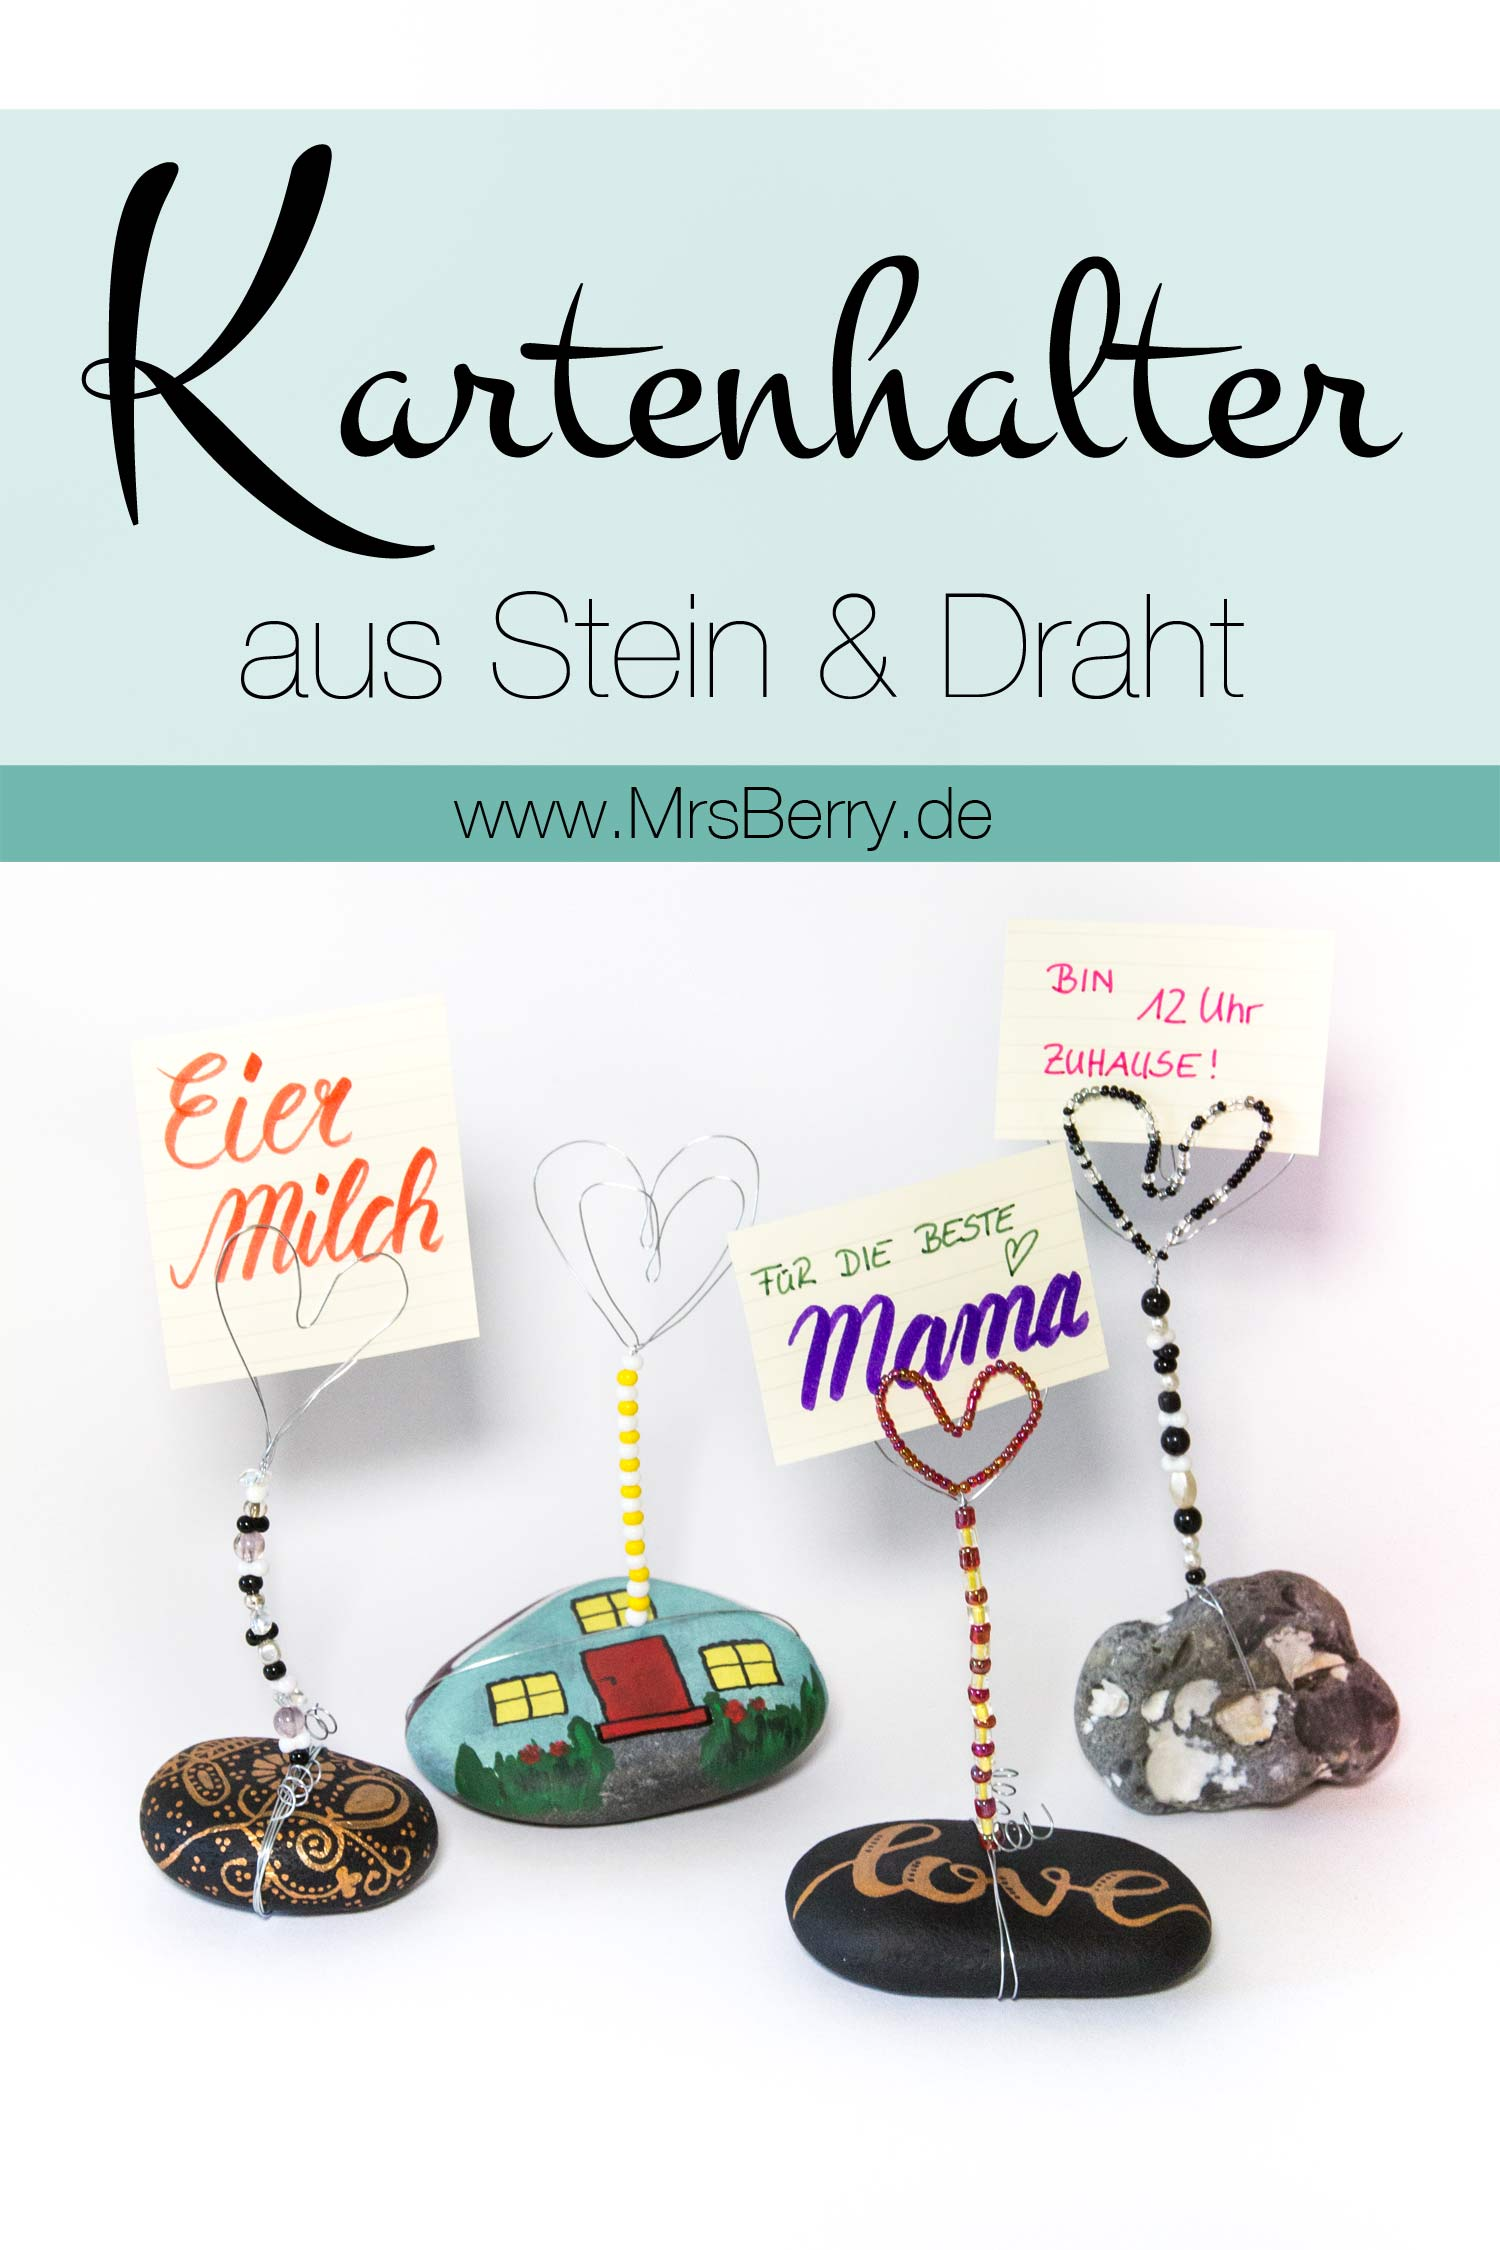 diy kartenhalter aus steinen draht basteln mrsberry. Black Bedroom Furniture Sets. Home Design Ideas